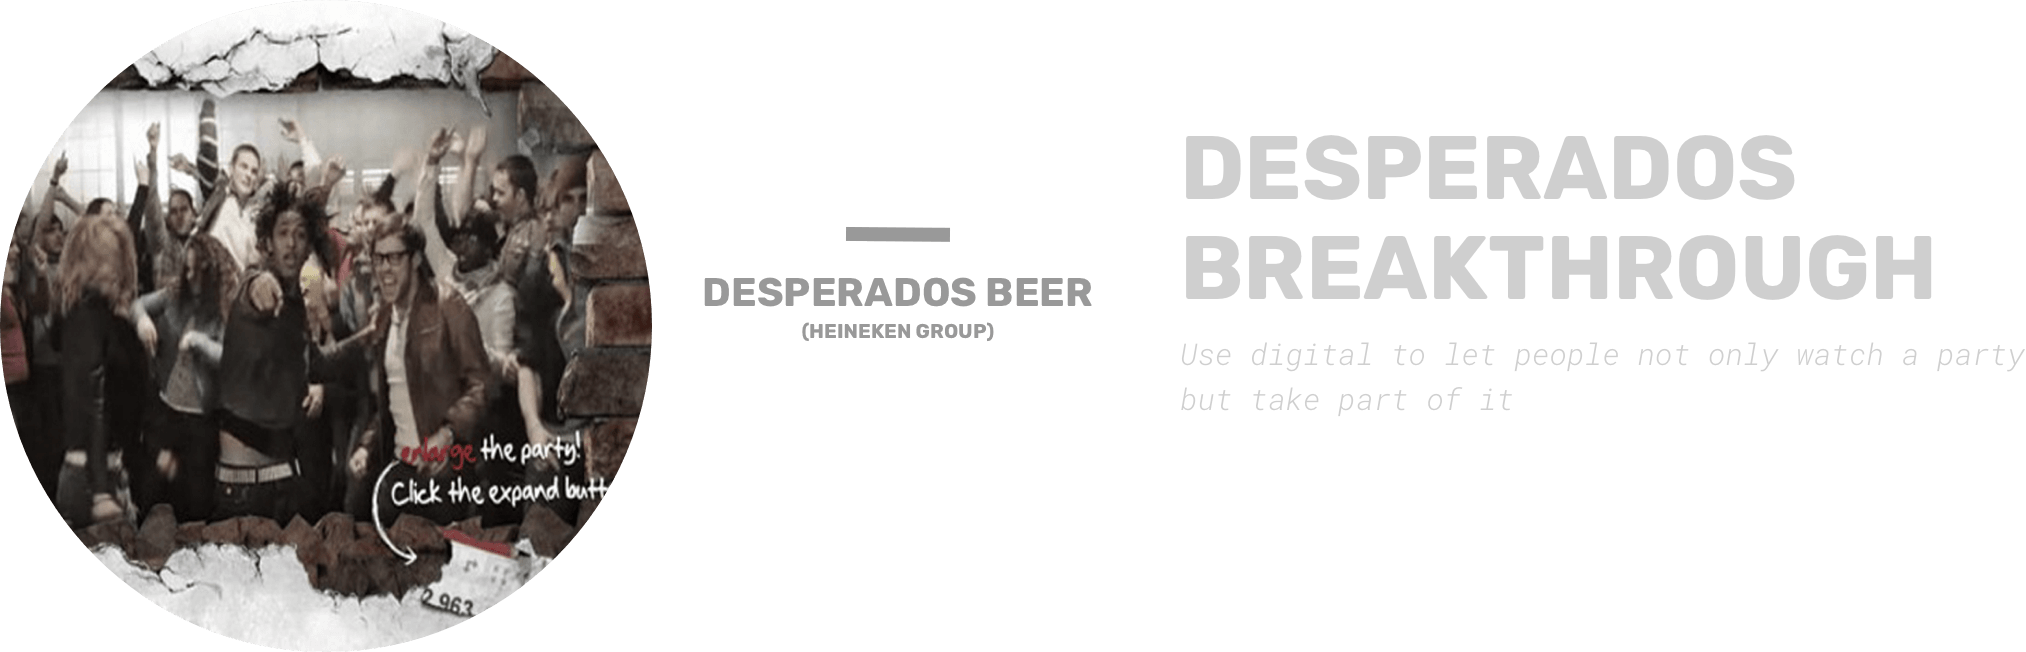 desperados interactive